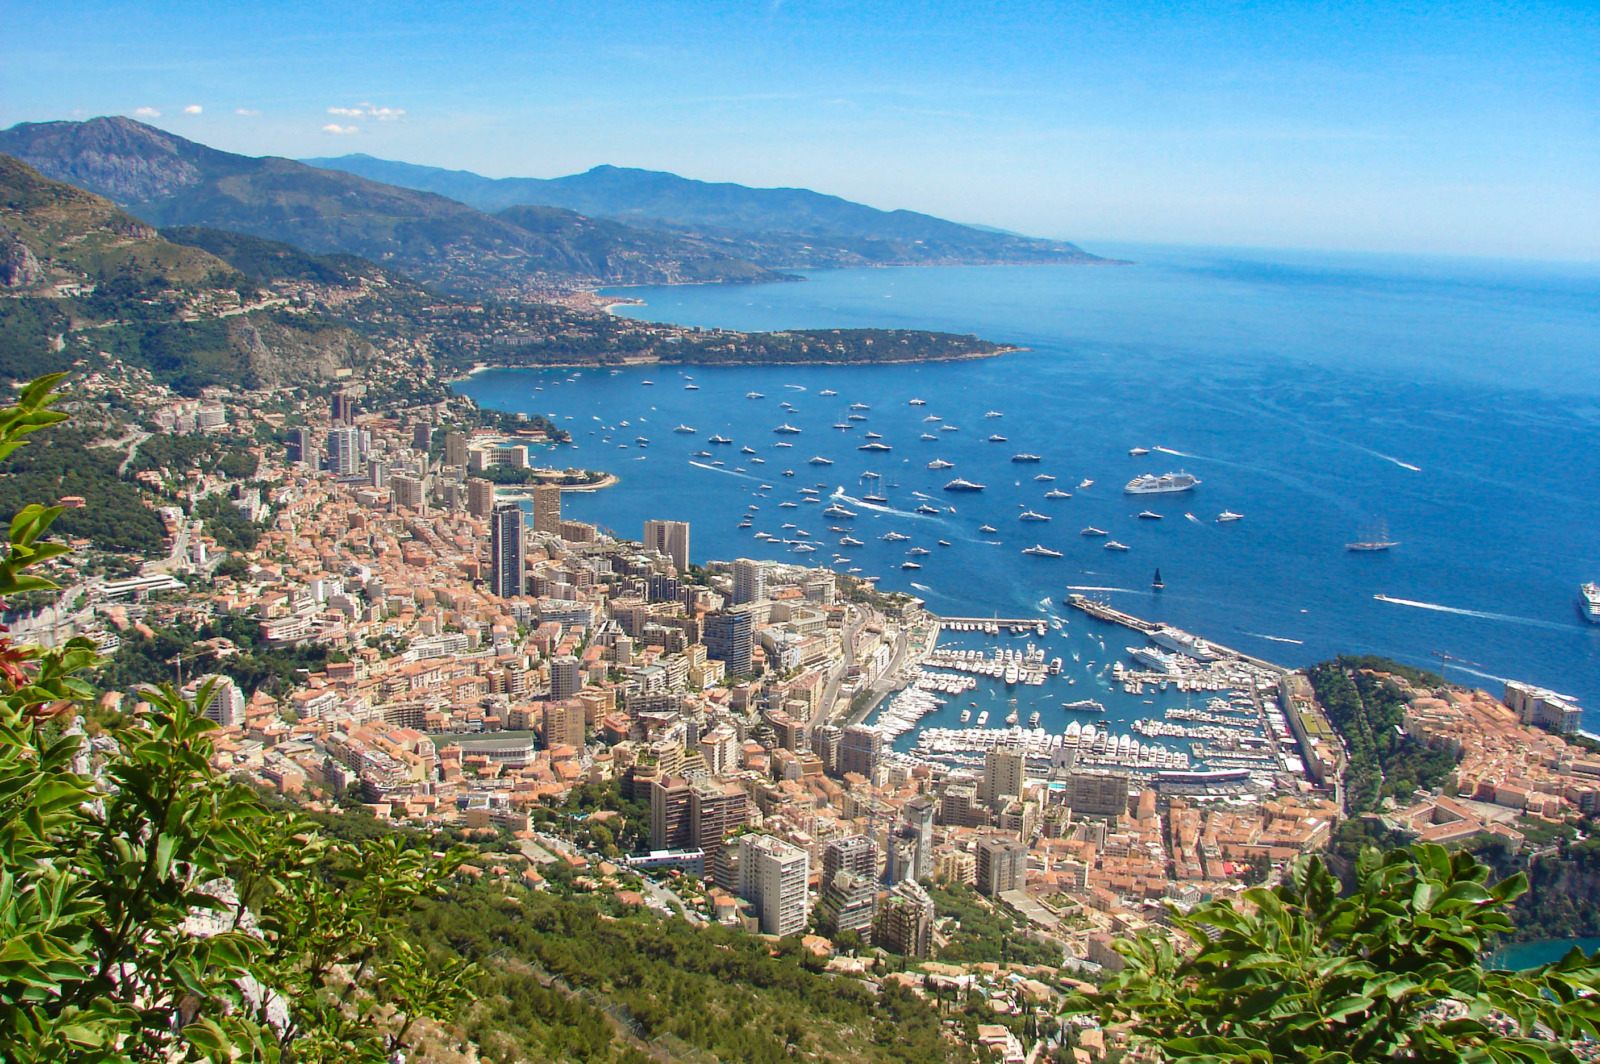 The view to Monaco from Tête de Chien in La Turbie © avu-edm - licence [CC BY 3.0] from Wikimedia Commons